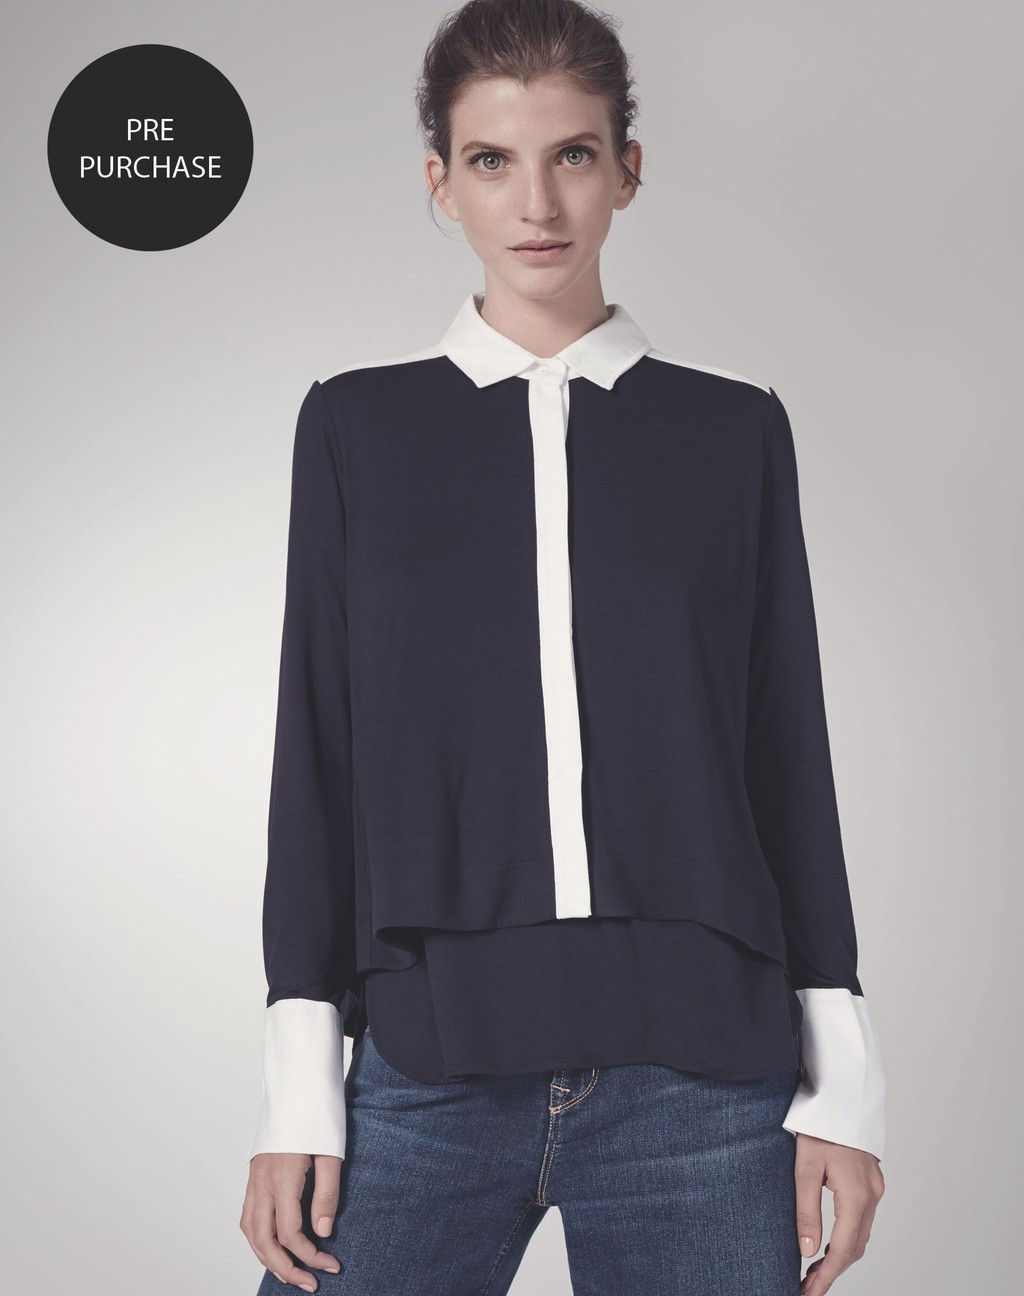 Crop Swing Shirt - neckline: shirt collar/peter pan/zip with opening; pattern: plain; style: shirt; secondary colour: white; predominant colour: navy; occasions: evening; length: standard; fibres: viscose/rayon - 100%; fit: body skimming; sleeve length: long sleeve; sleeve style: standard; texture group: crepes; pattern type: fabric; multicoloured: multicoloured; season: s/s 2016; wardrobe: event